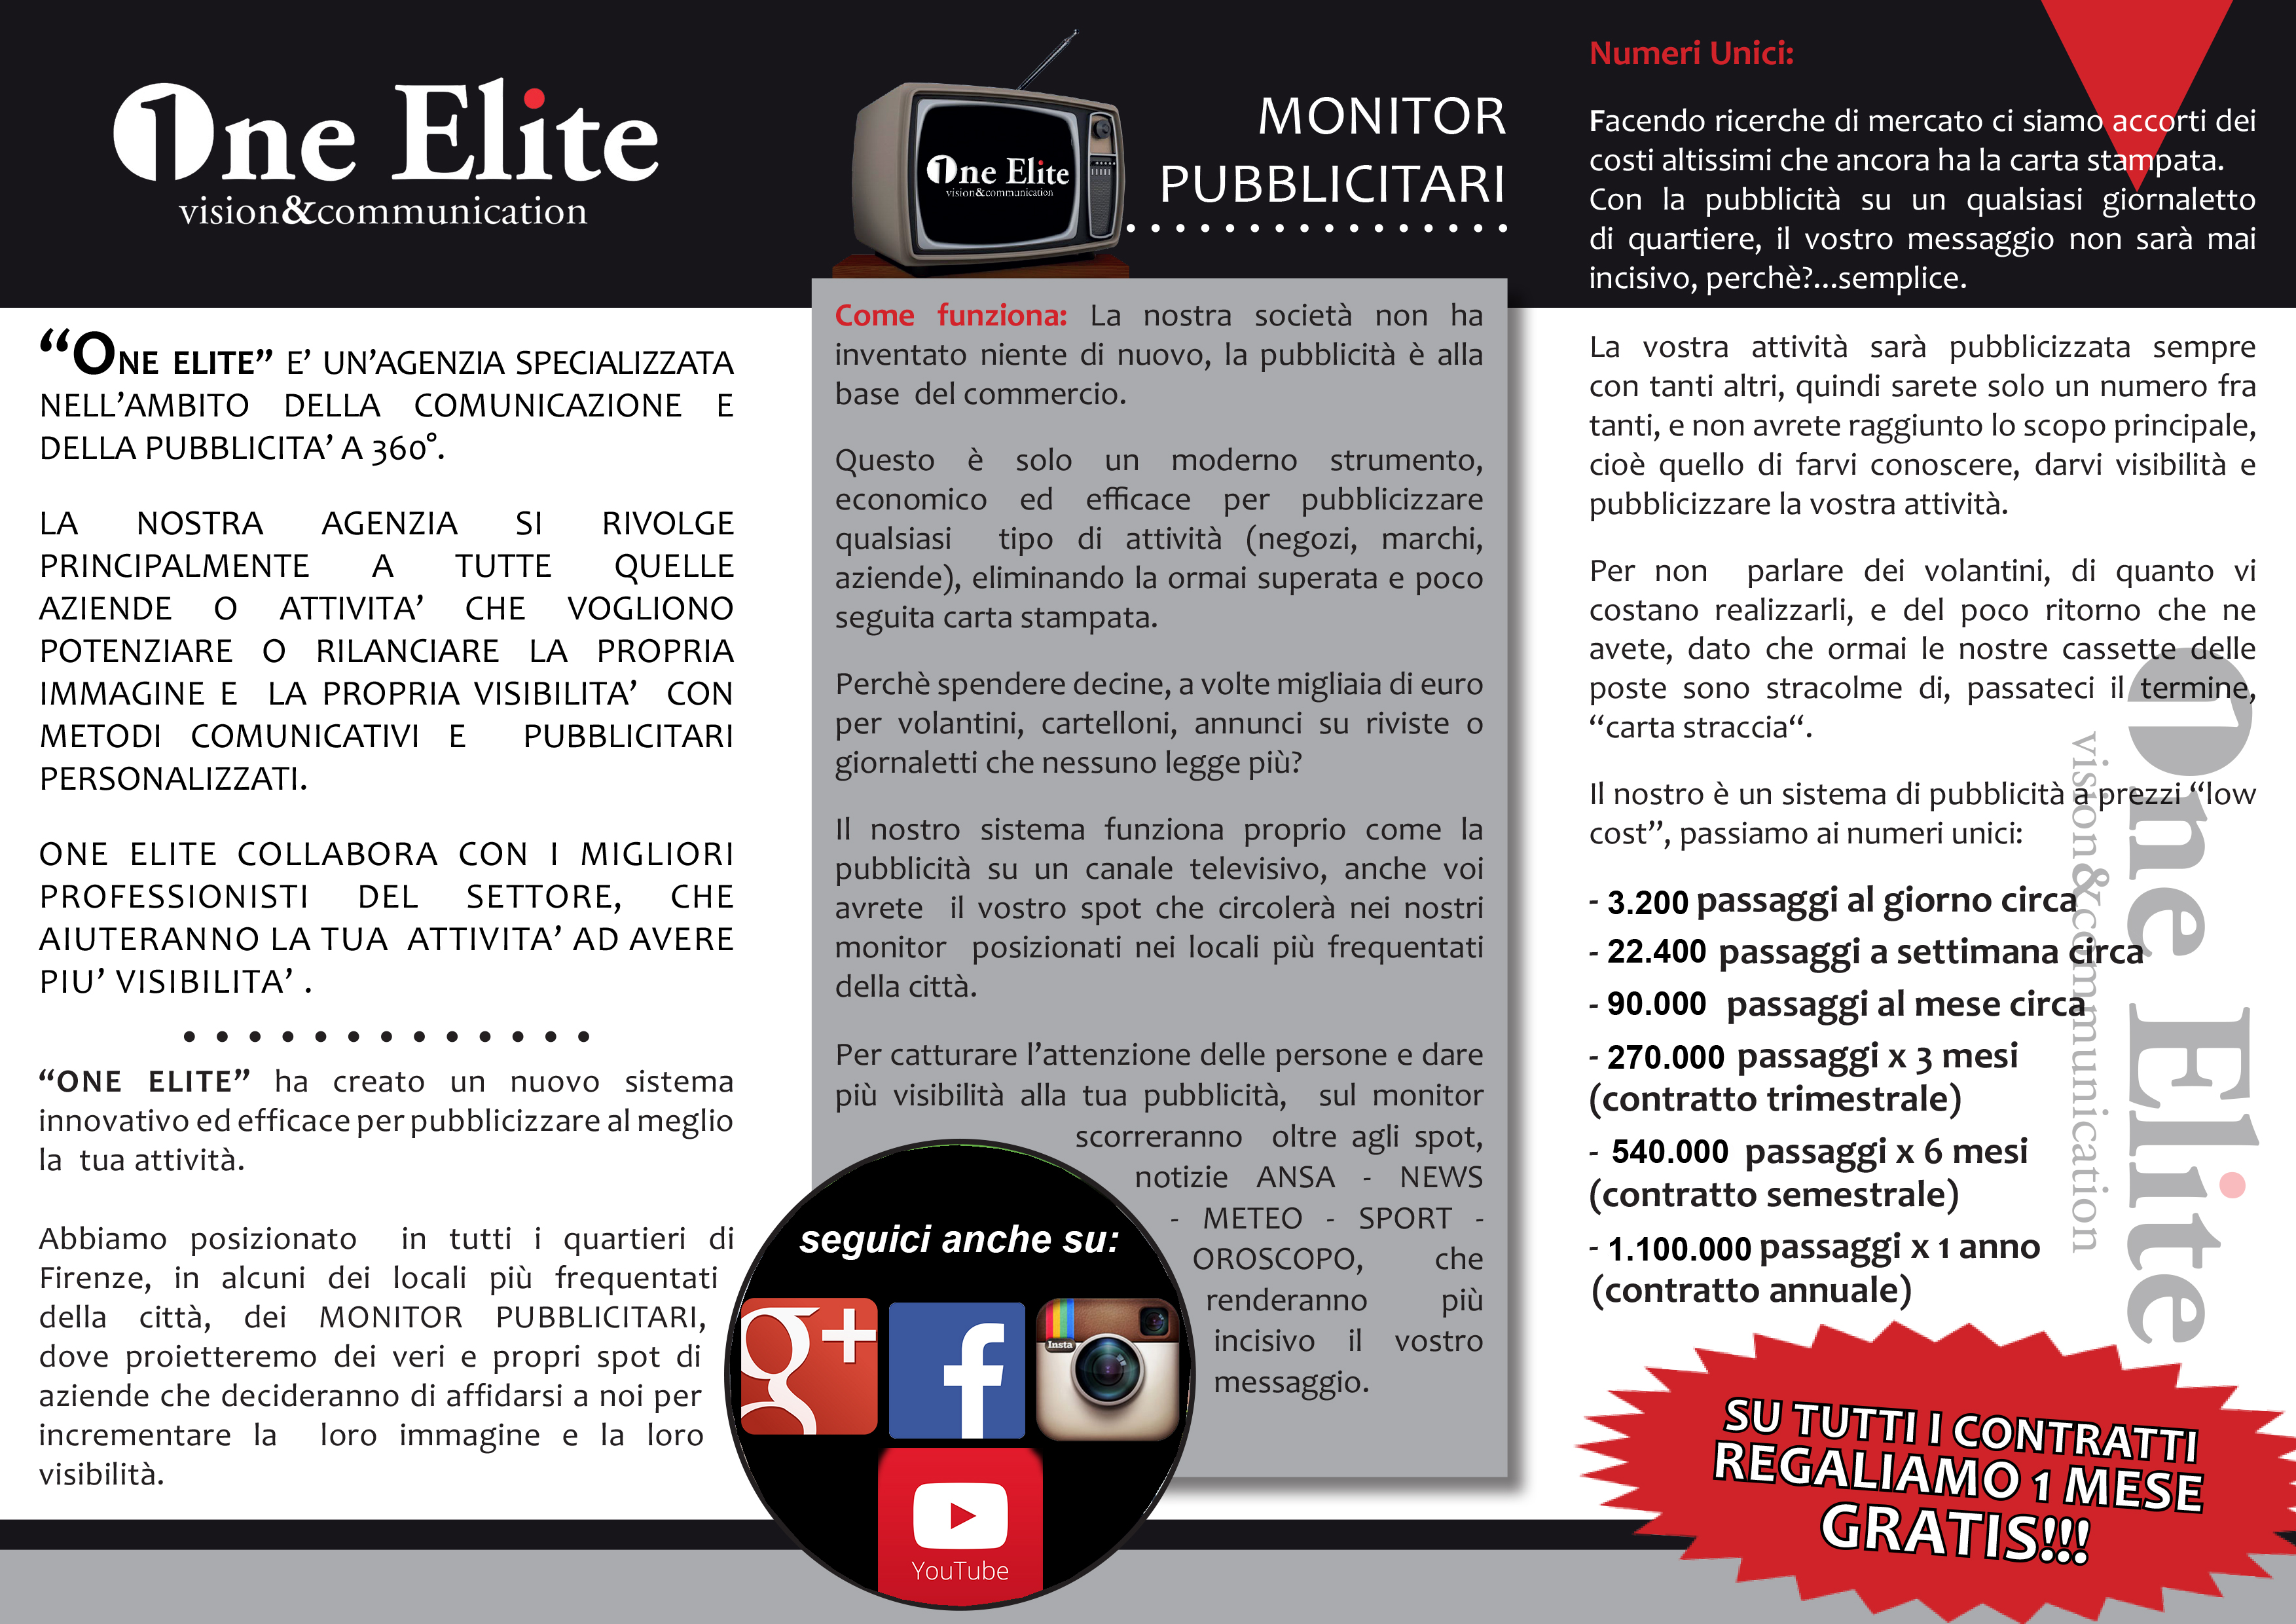 brochure one elite vision and comunication retro